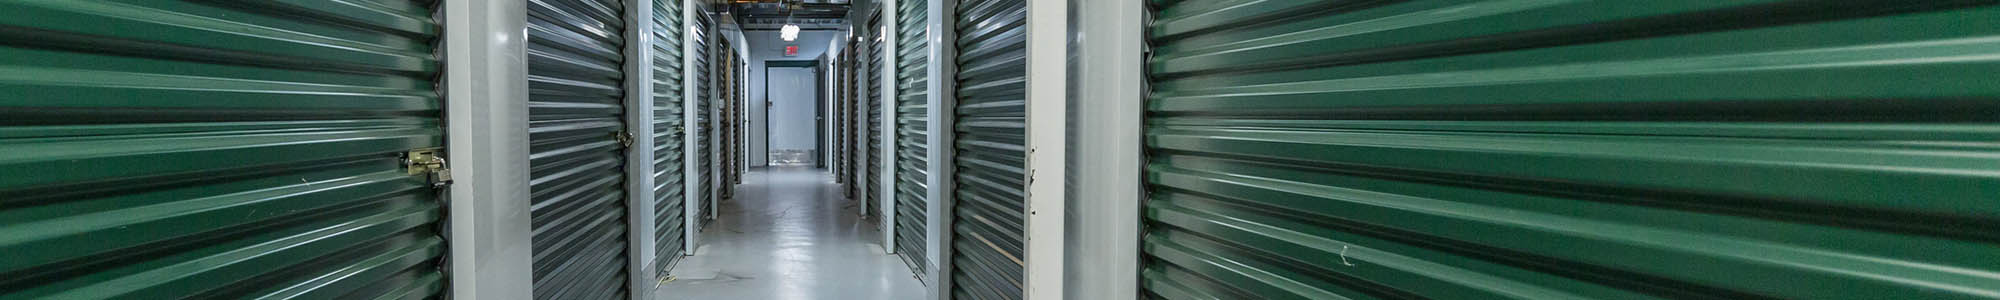 Contact us for your self storage needs in Saint Paul